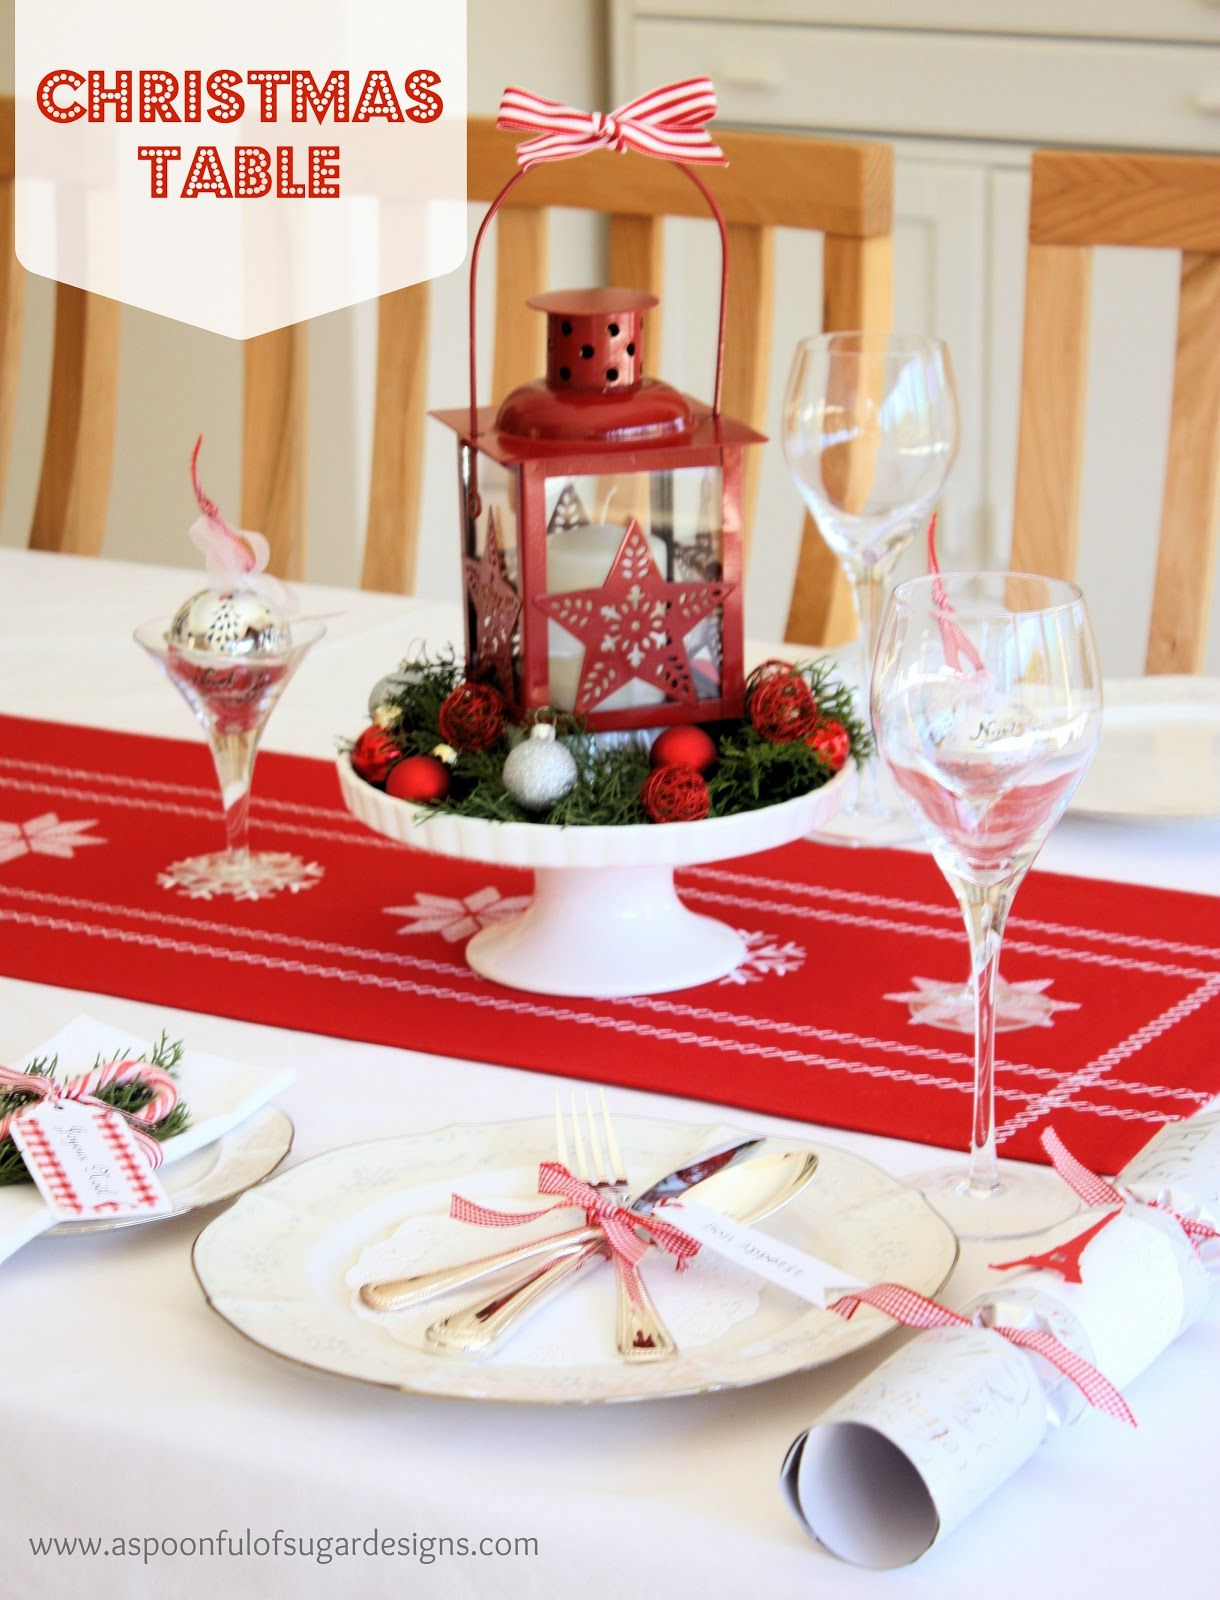 christmas table settings images | Our Christmas Table | A Spoonful of Sugar : pinterest christmas table settings - pezcame.com